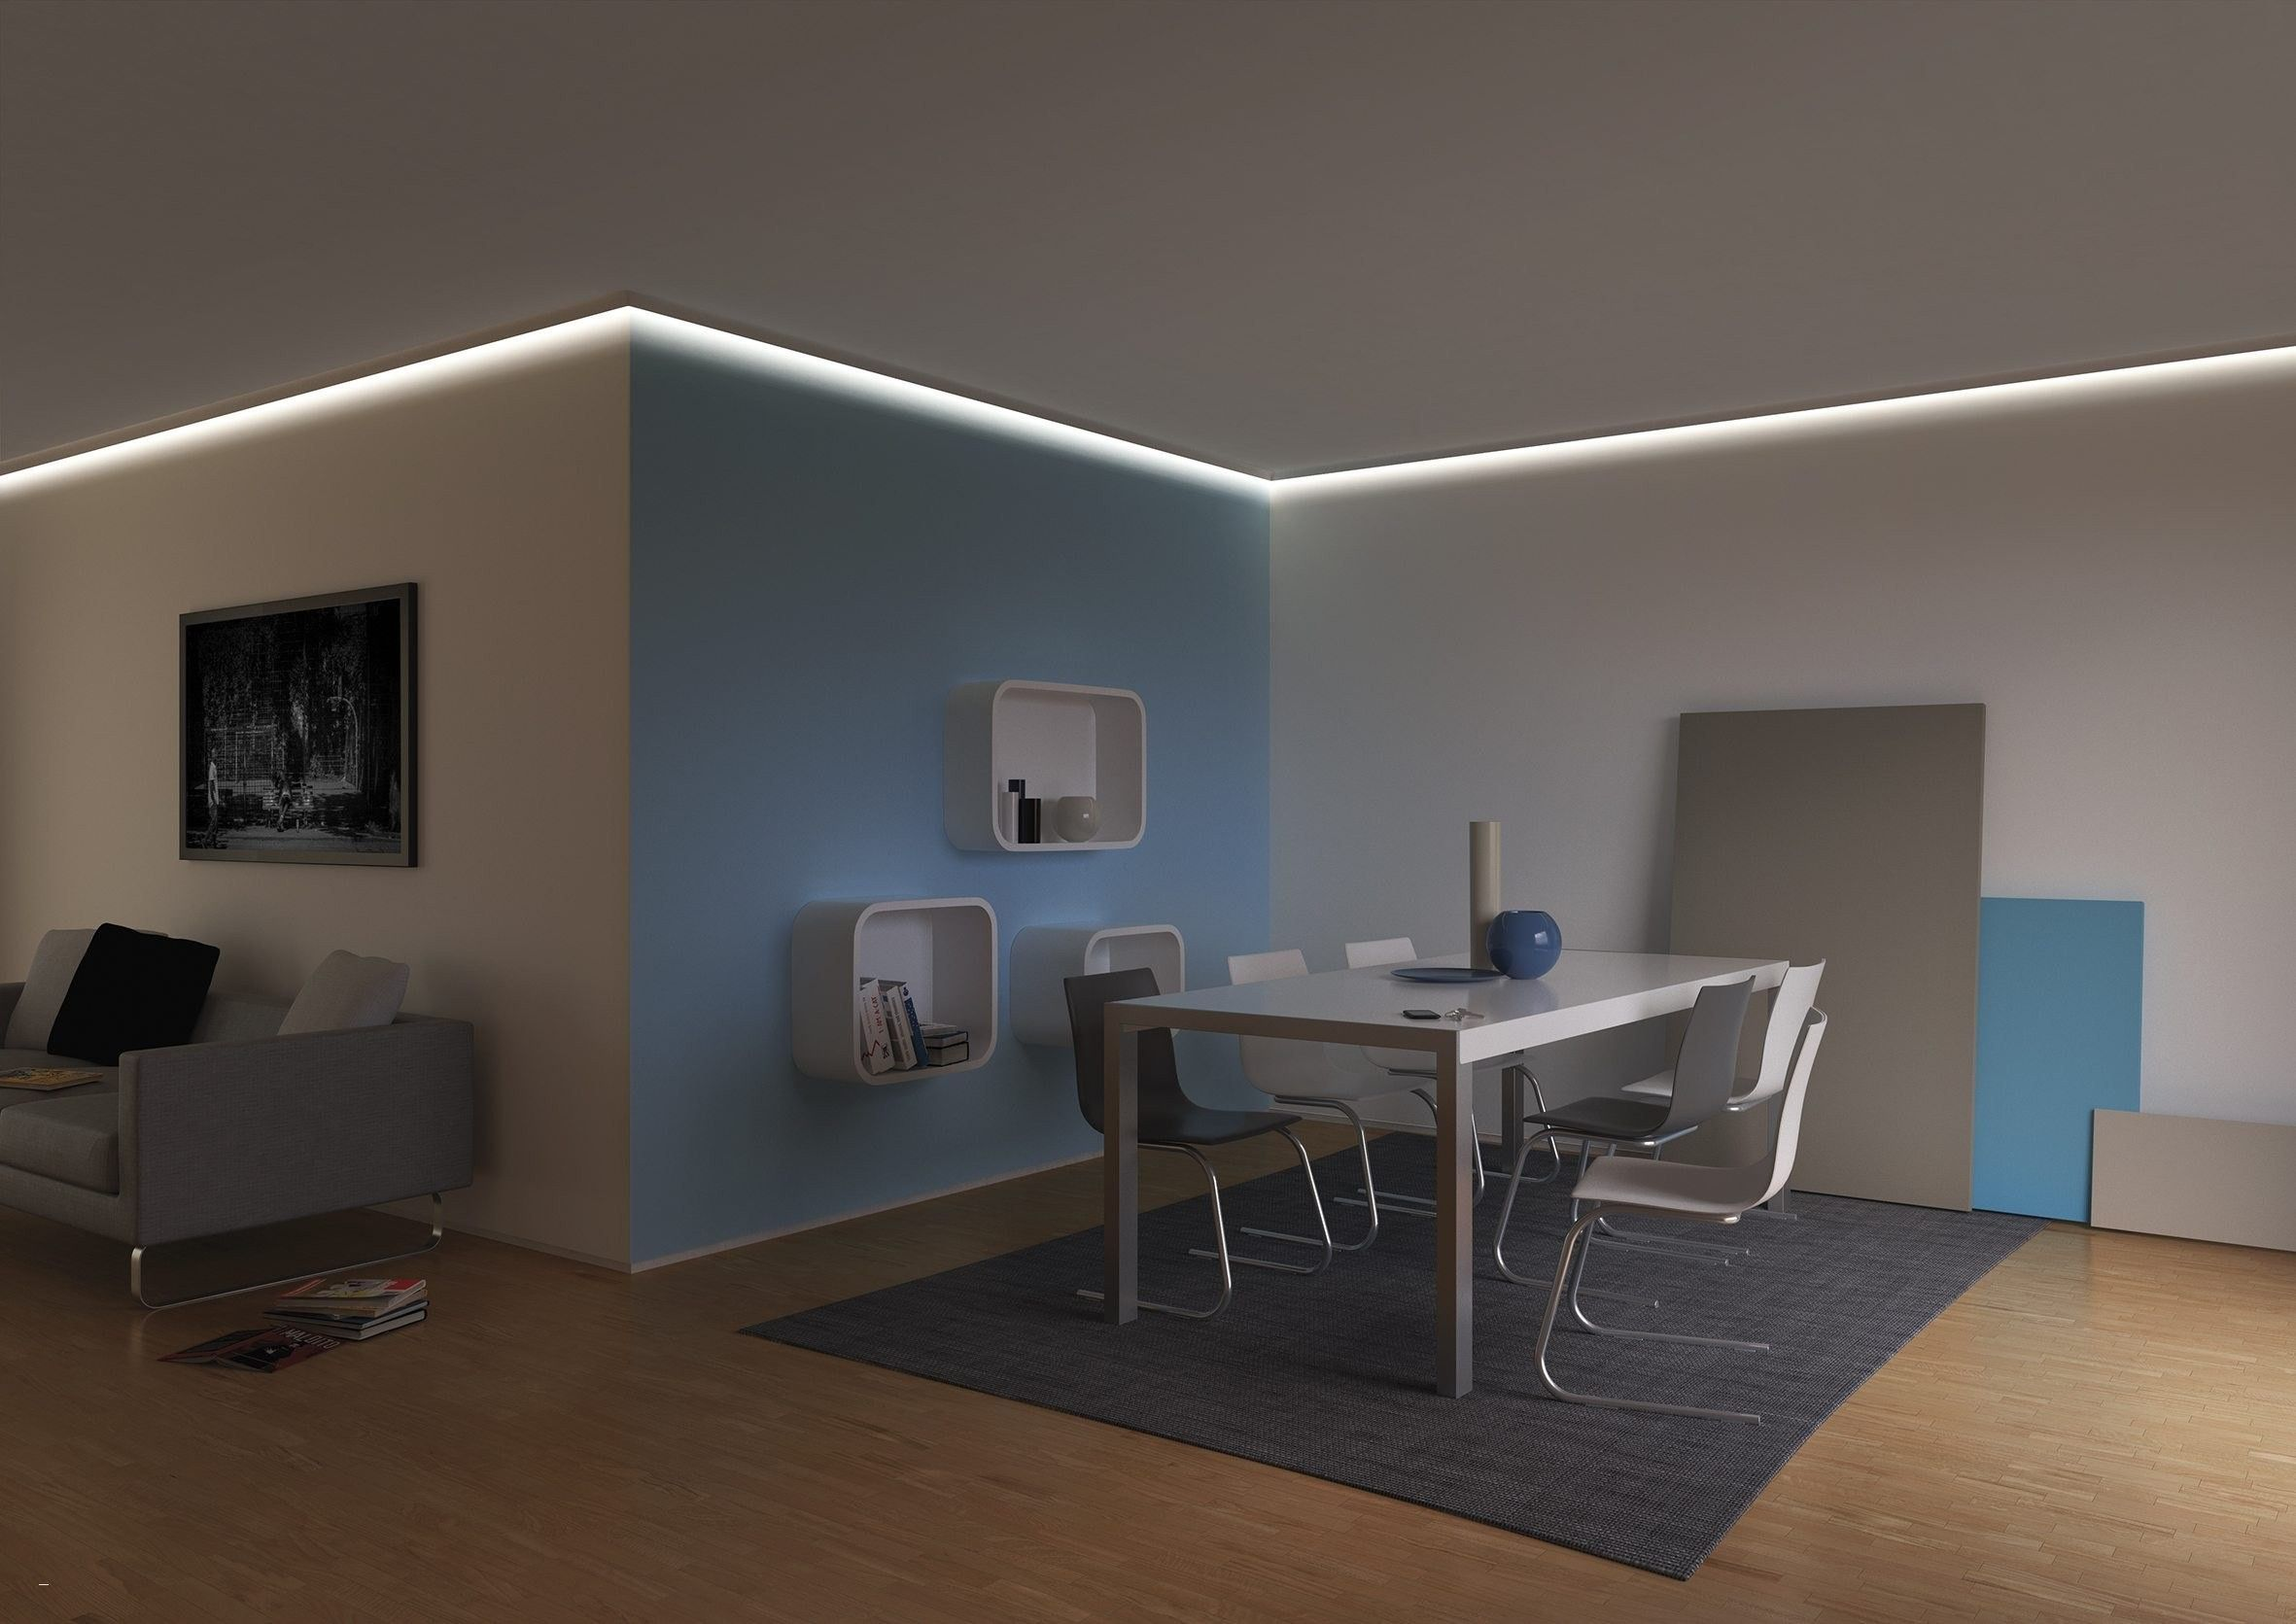 Full Size of Wohnzimmer Mit Led Beleuchtung Led Beleuchtung Wohnzimmer Ebay Led Beleuchtung Für Wohnzimmer Beleuchtung Wohnzimmer Led Spots Wohnzimmer Led Beleuchtung Wohnzimmer